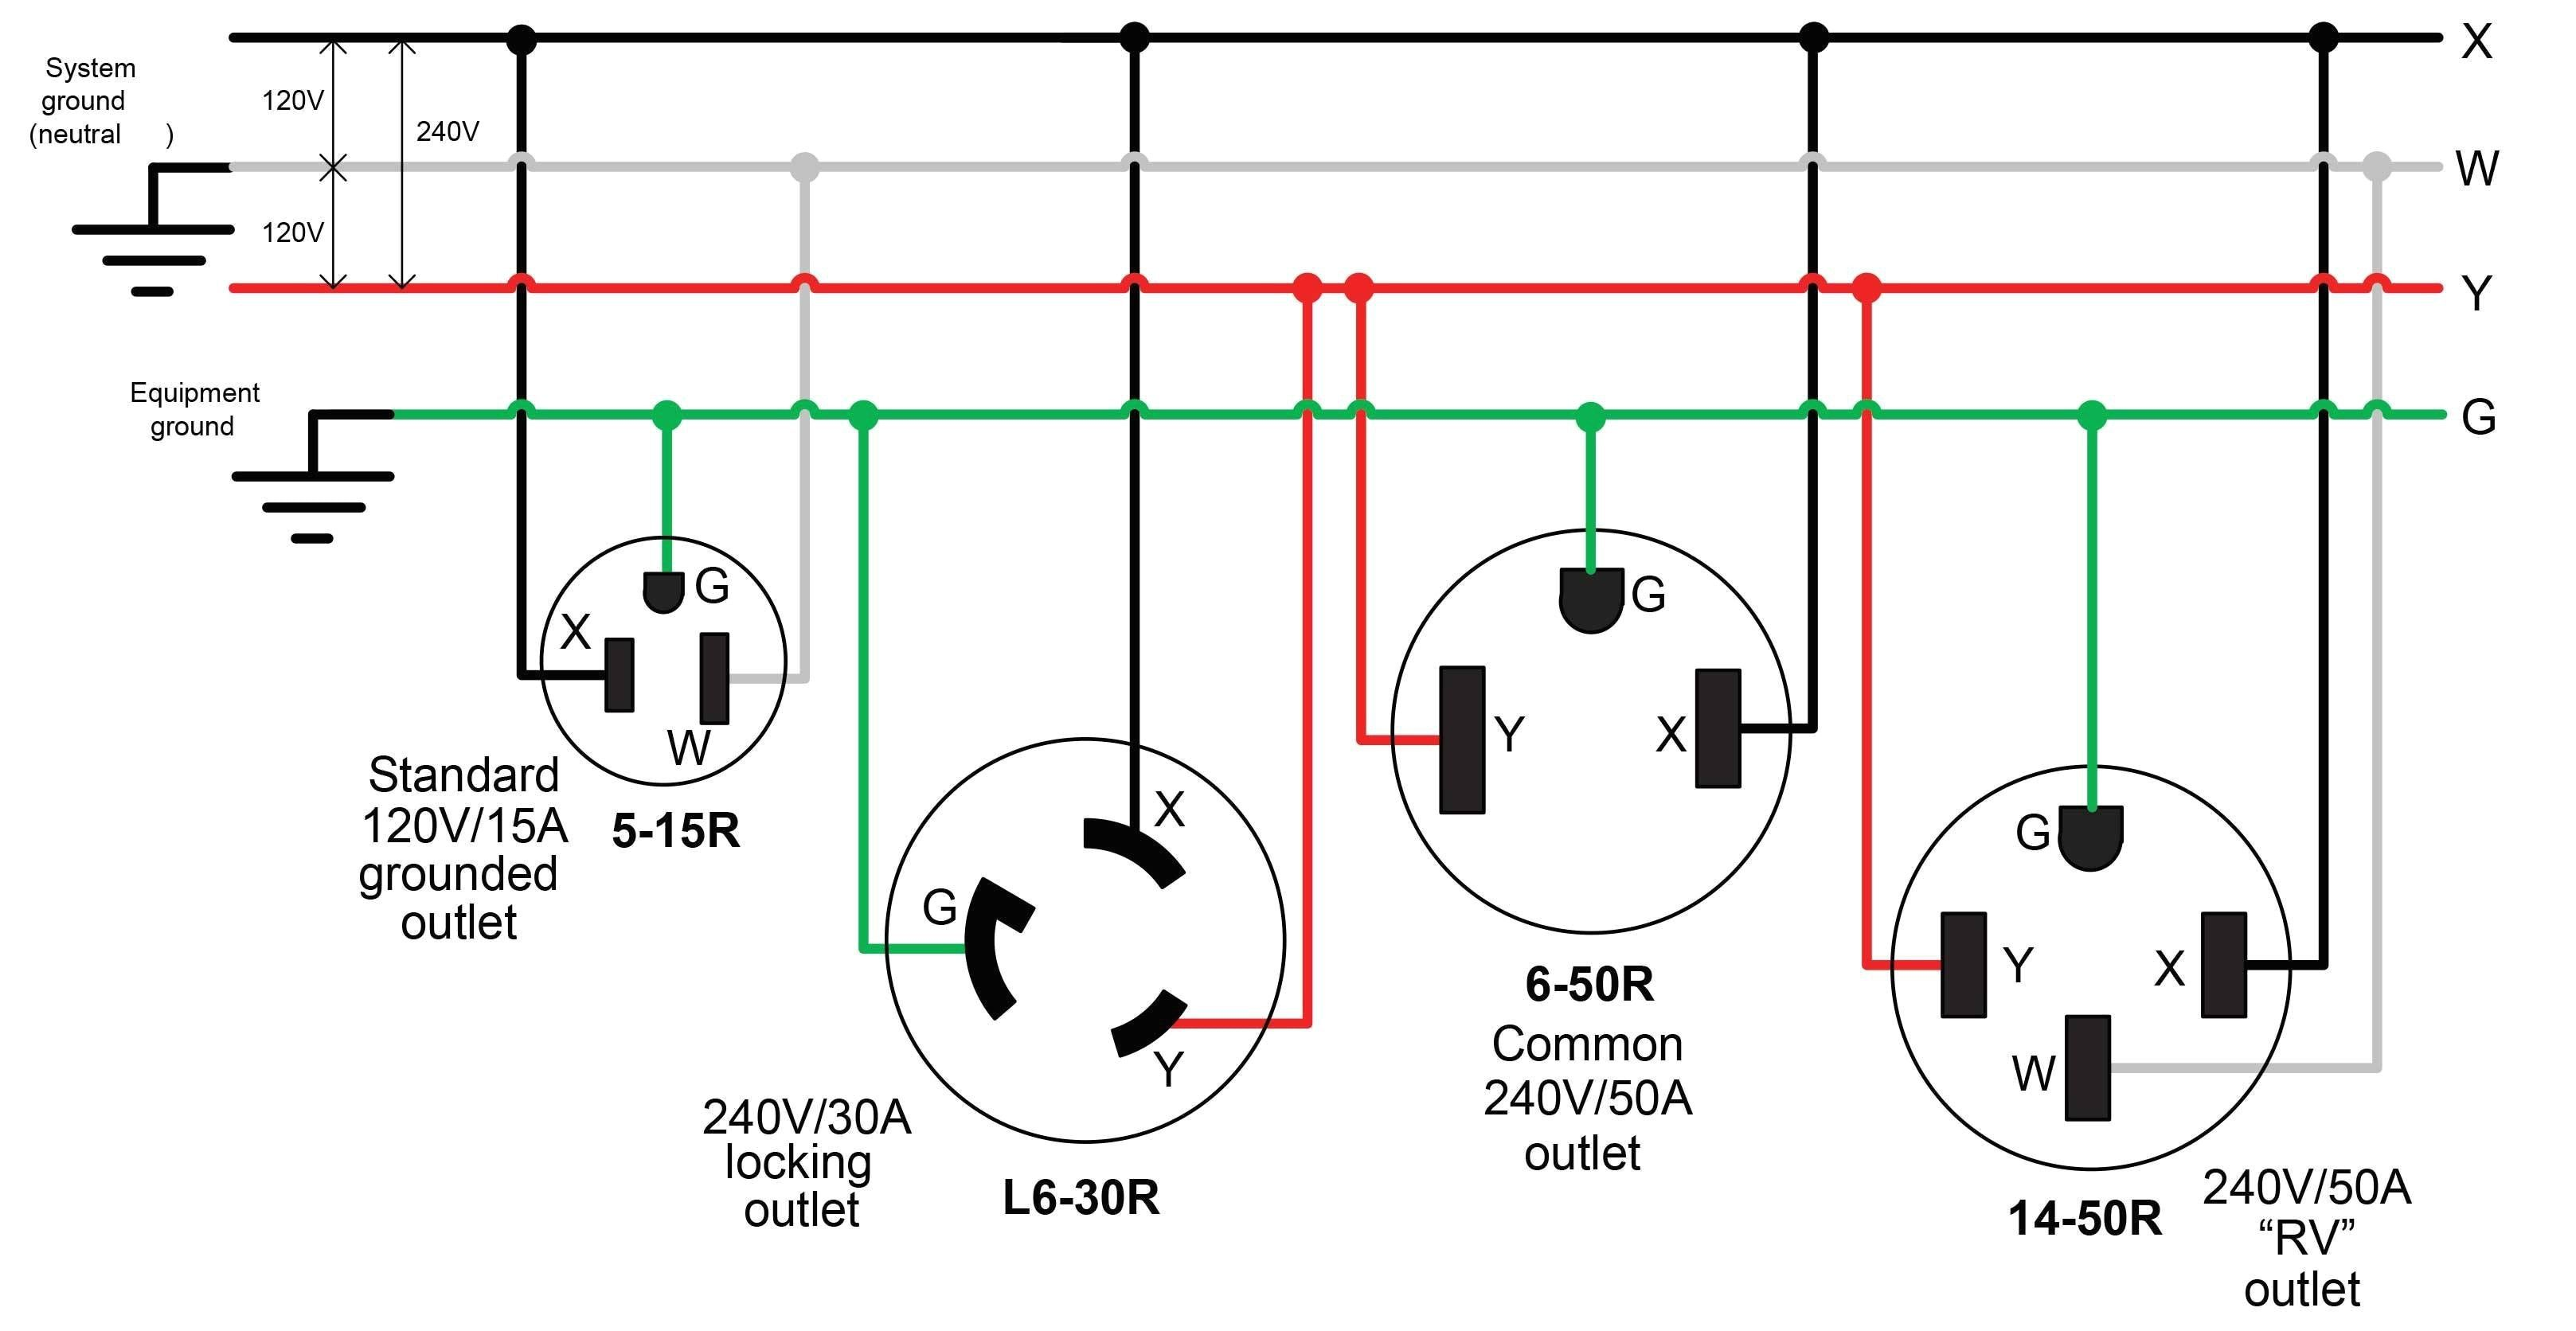 240v stove wiring diagram wiring diagram advance wiring diagram 4 prong stove schematic [ 3235 x 1672 Pixel ]